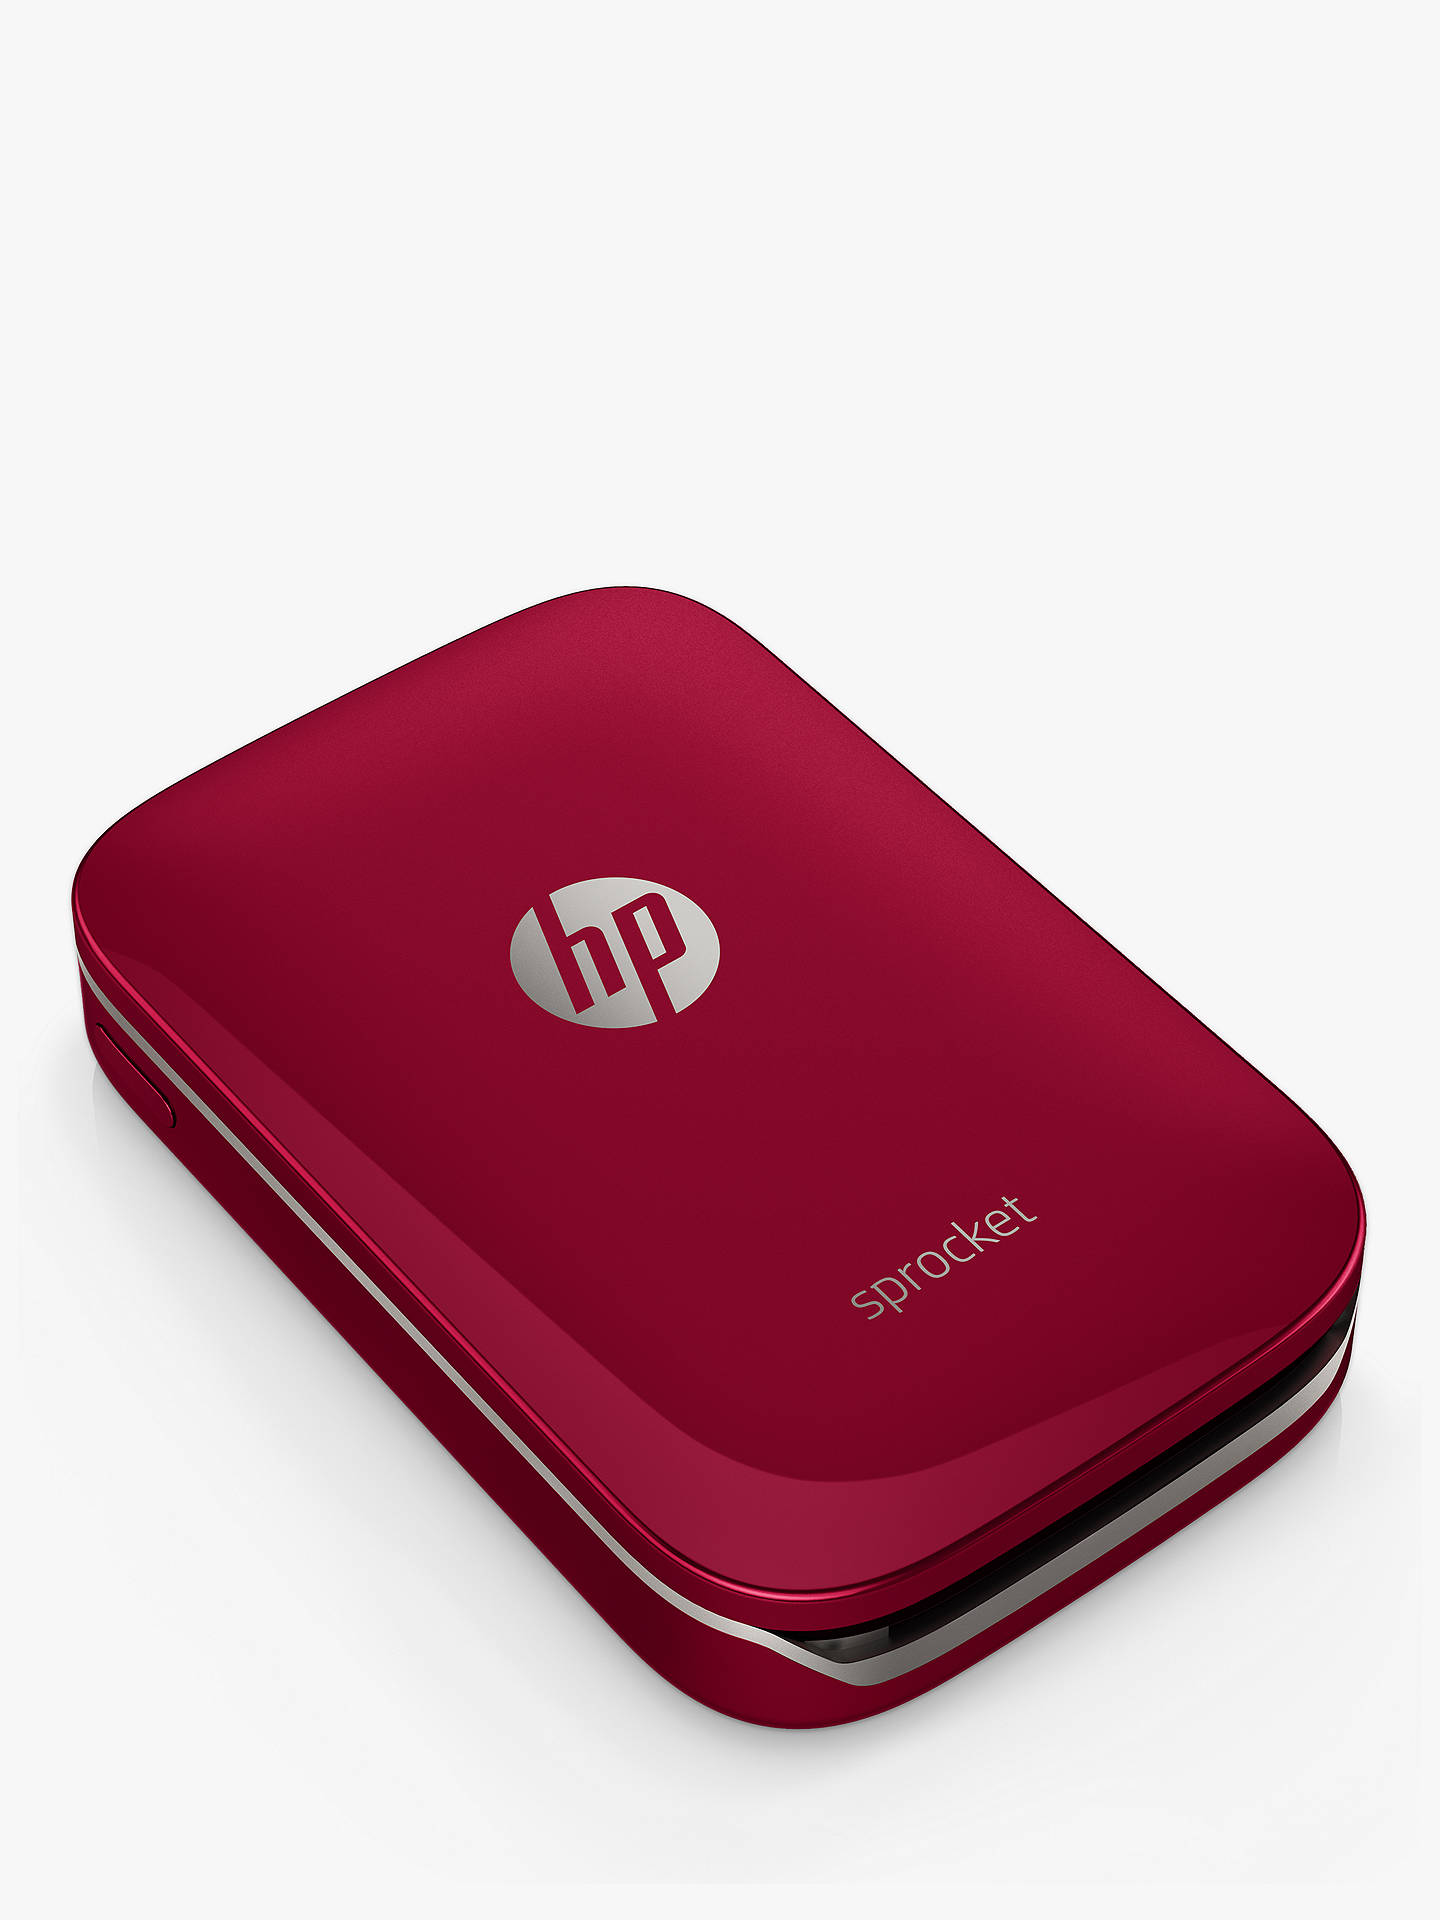 Buy HP Sprocket Portable Photo Printer, Red Online at johnlewis.com